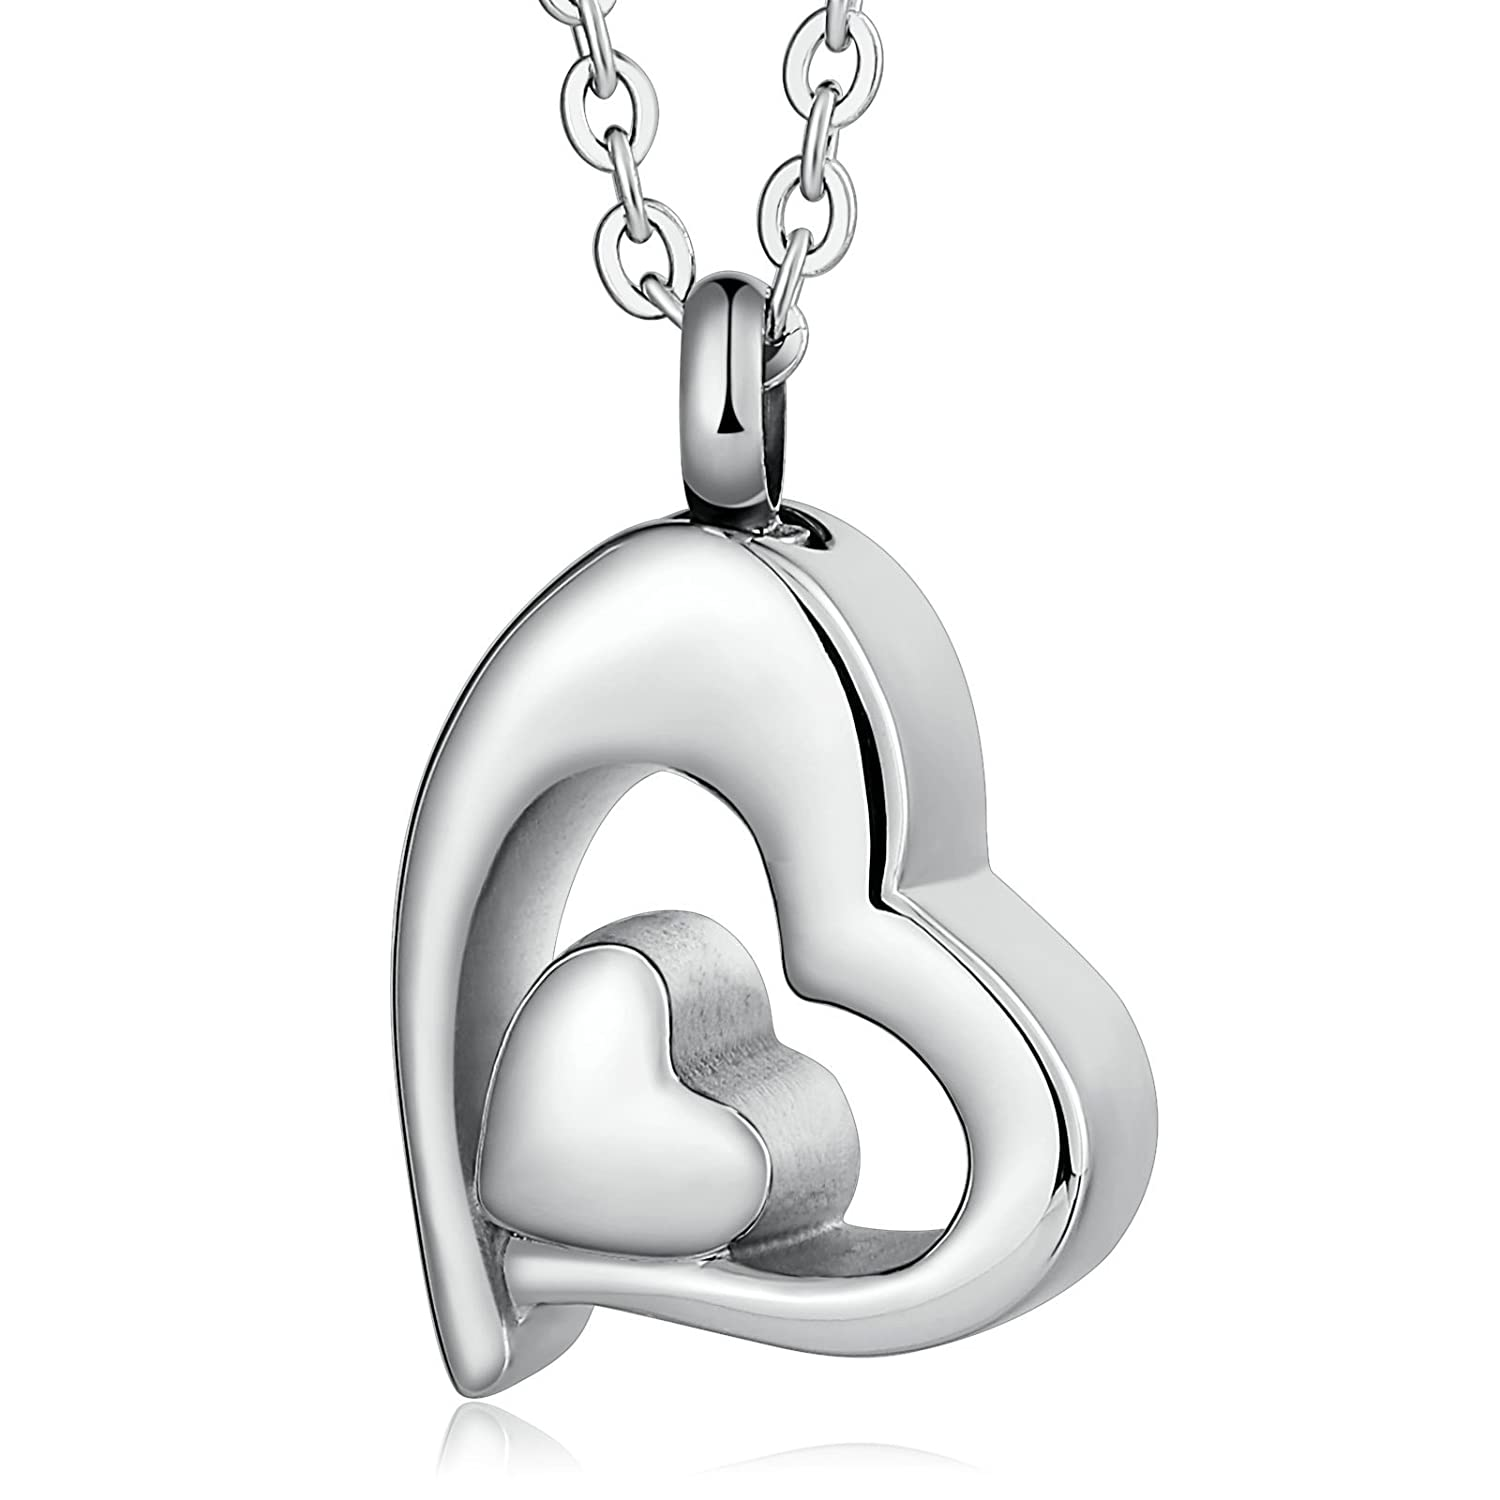 Stainless Steel Memorial Cremation Jewelry Heart Urn Pendant Necklace for Ashes